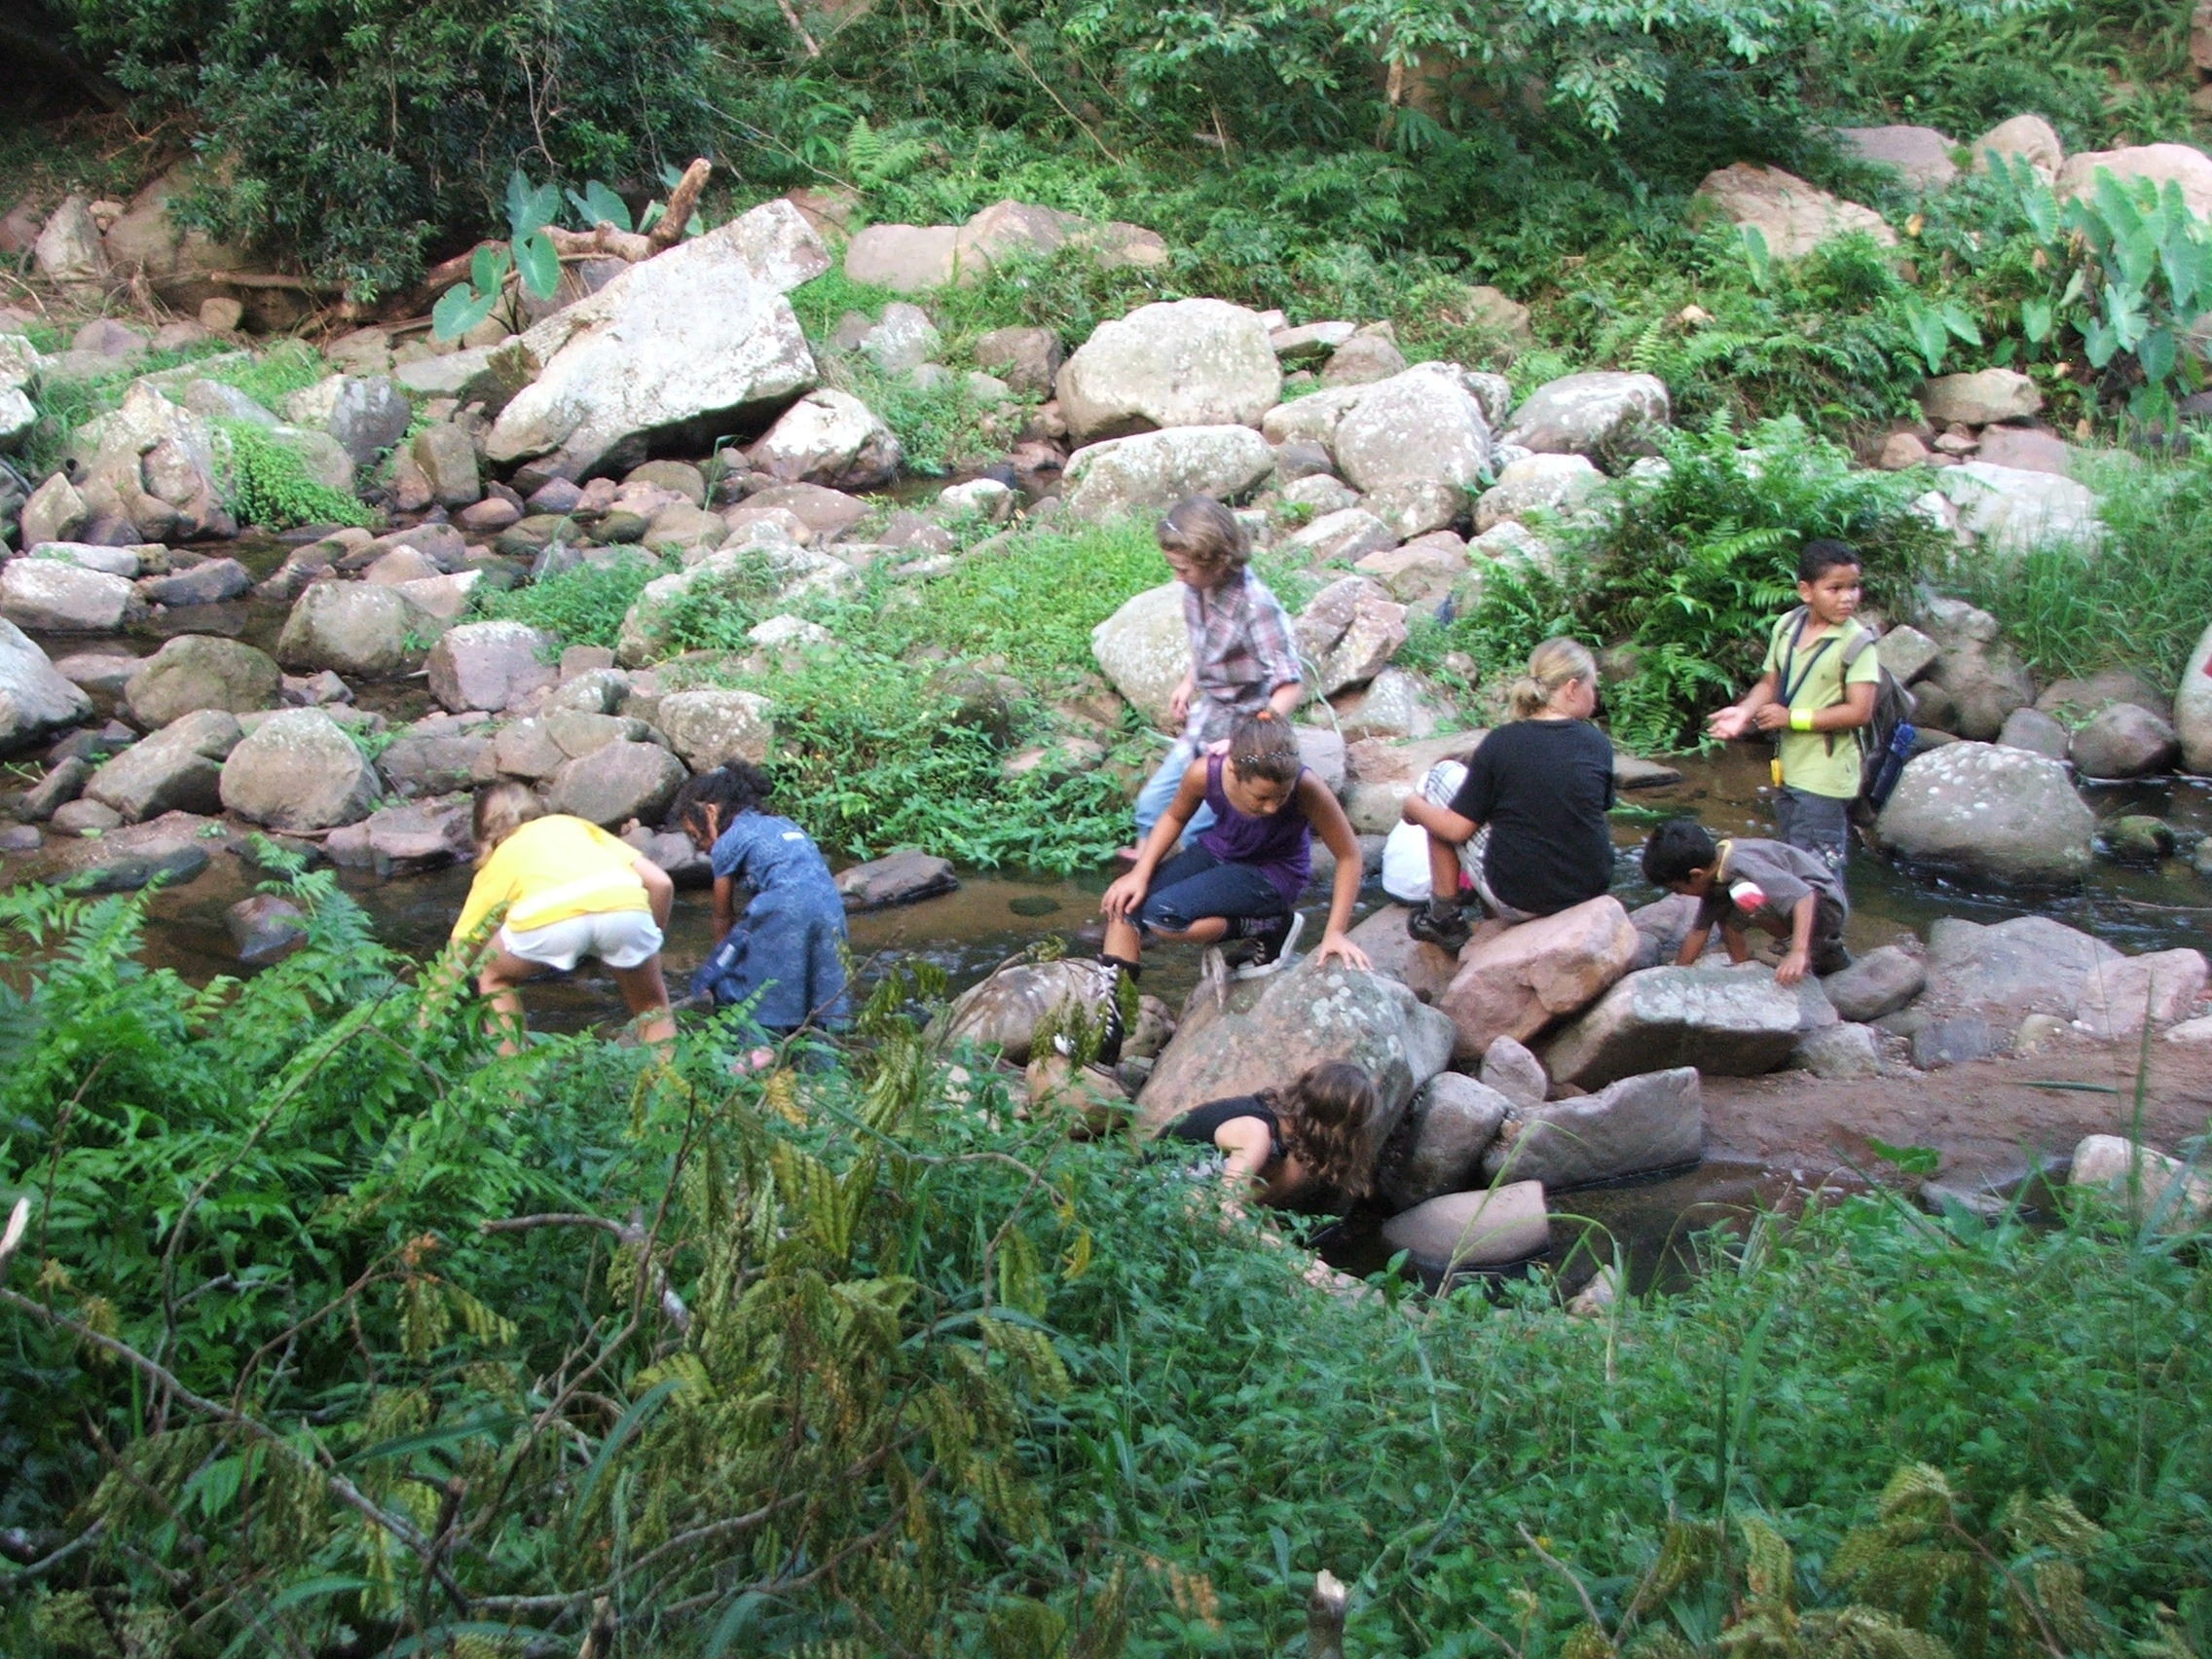 Lots of rocks and stones by a stream with a group of children looking for fish, tadpoles and frogs